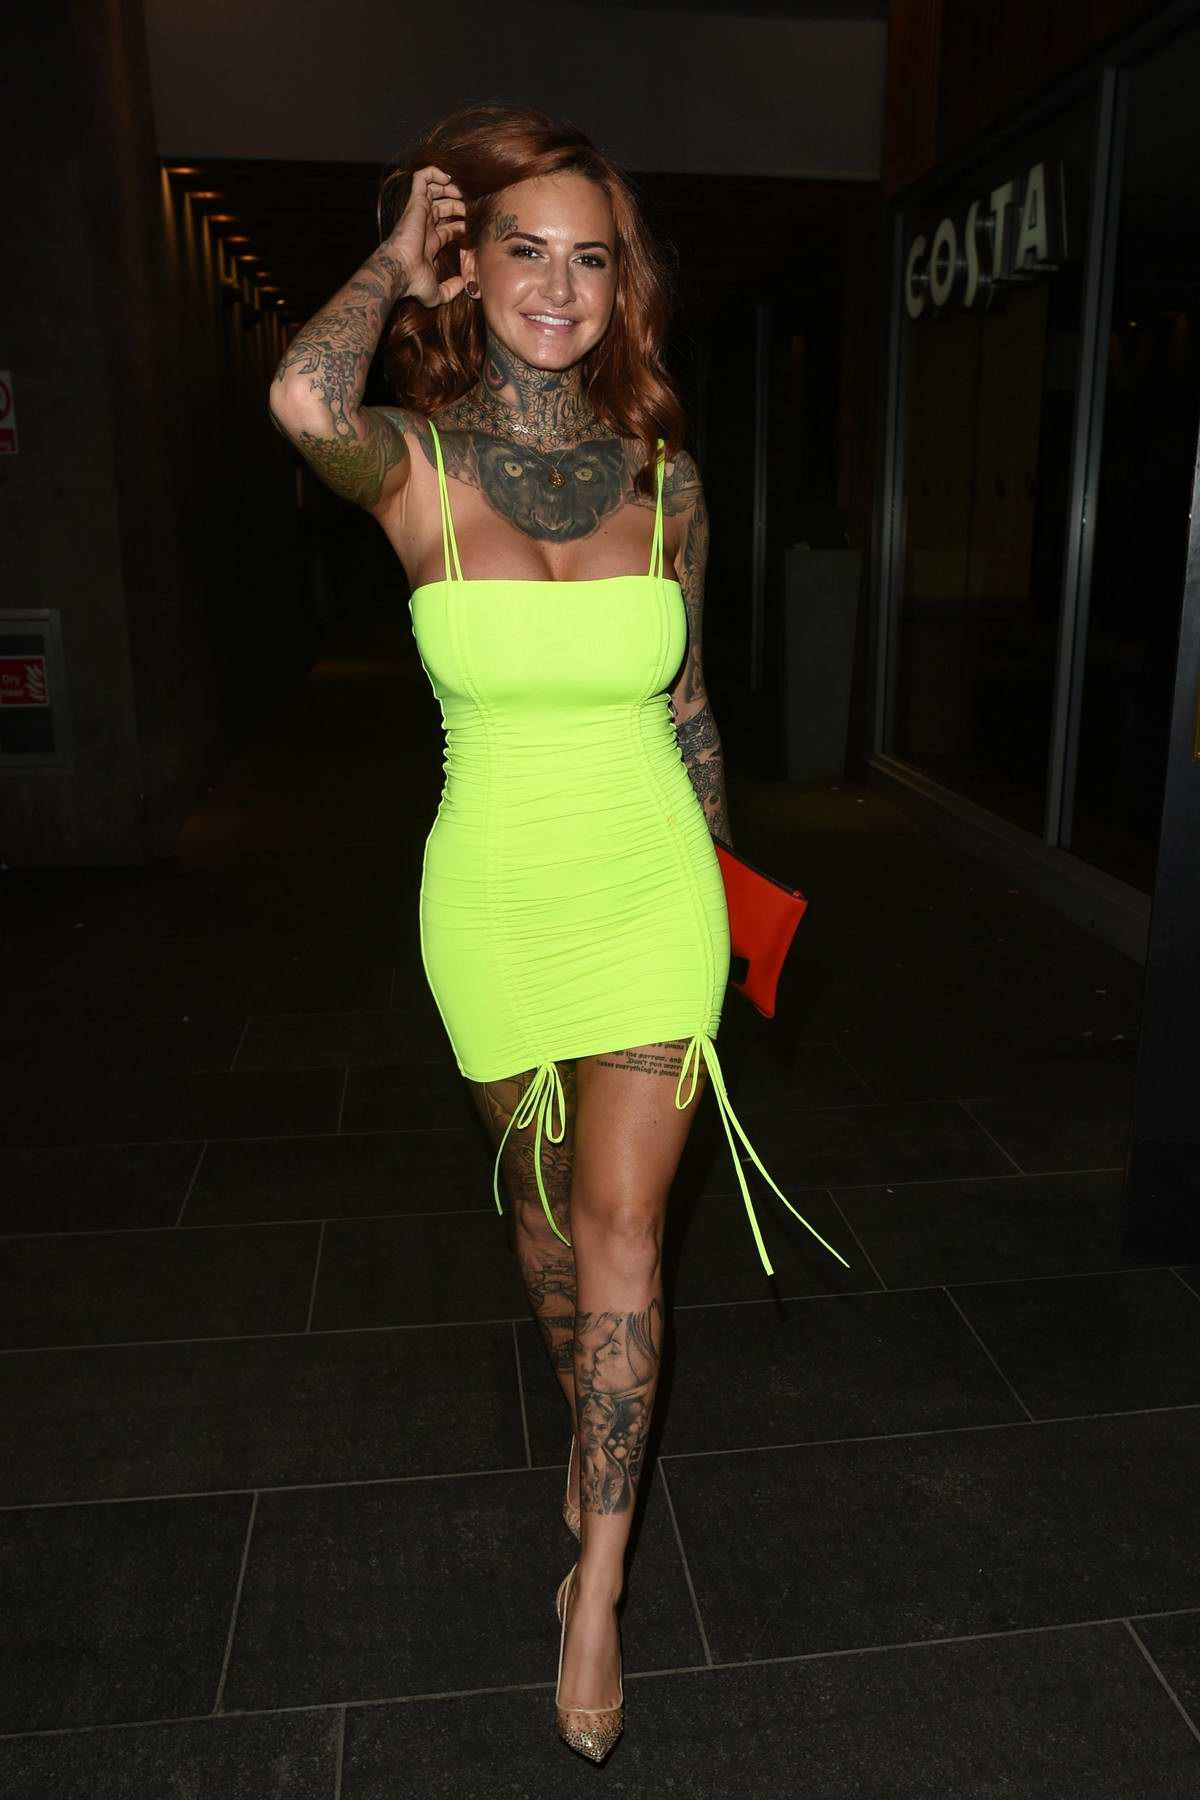 jemma lucy spotted in a neon green minidress while ...